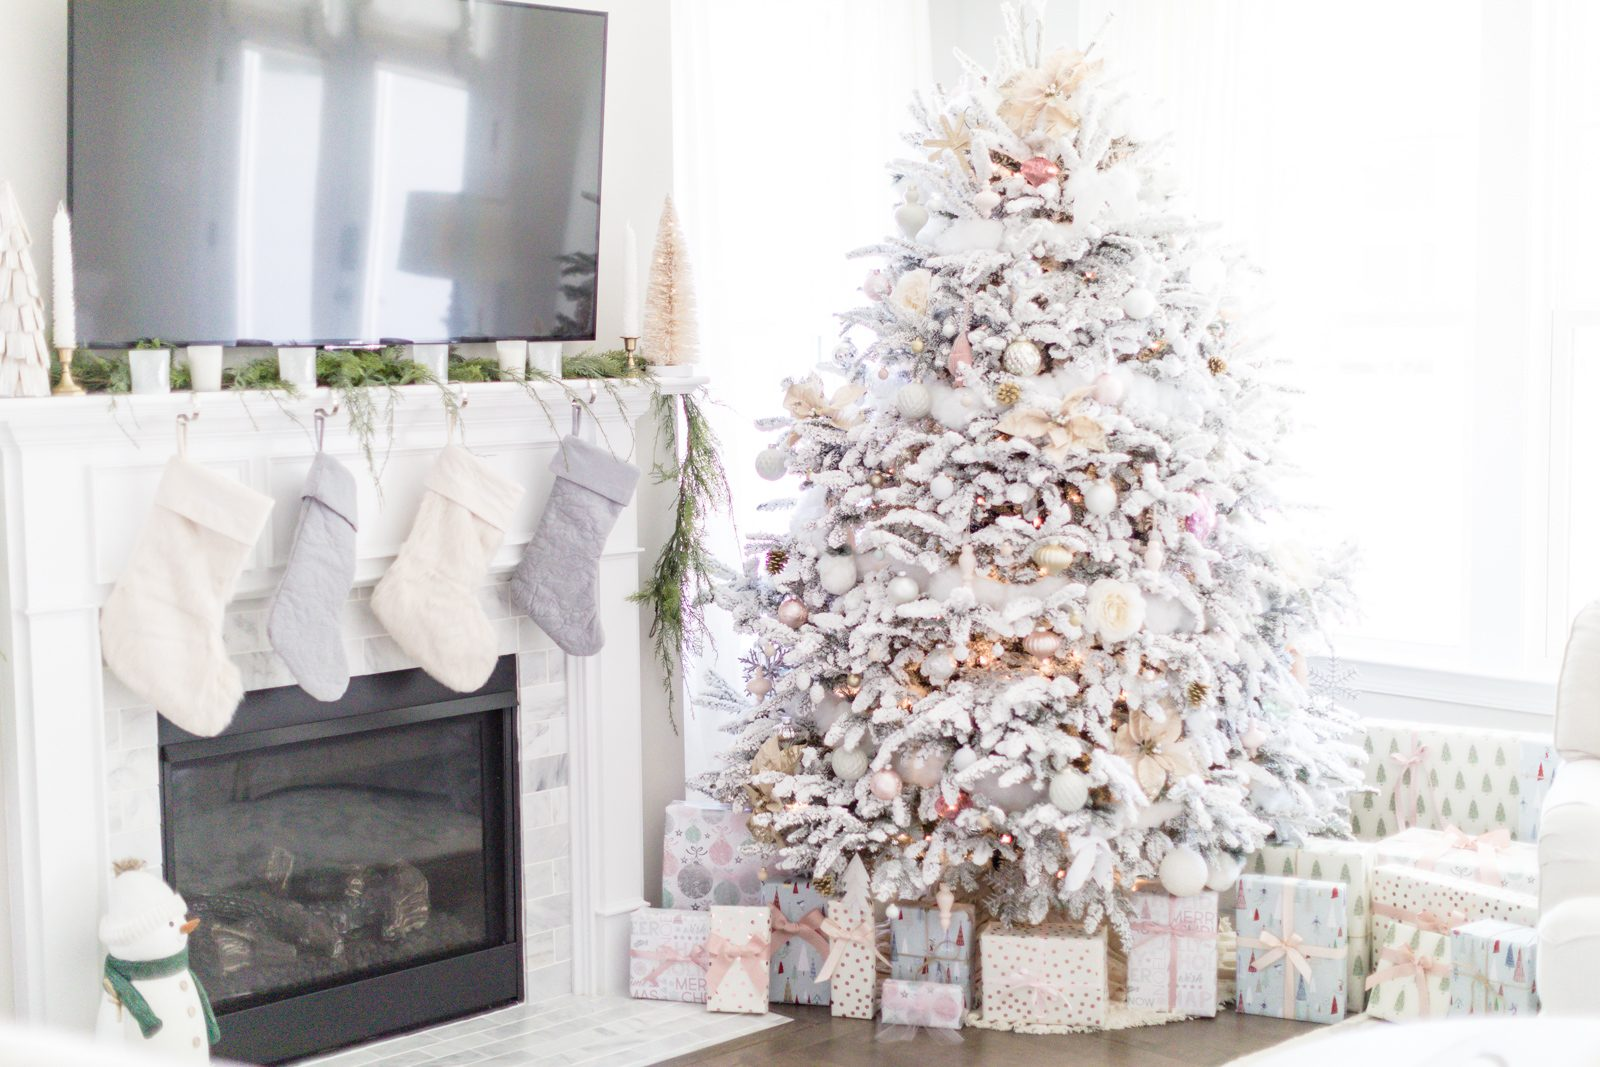 CHRISTMAS DECOR | FARMHOUSE STYLE FOR THE HOLIDAYS